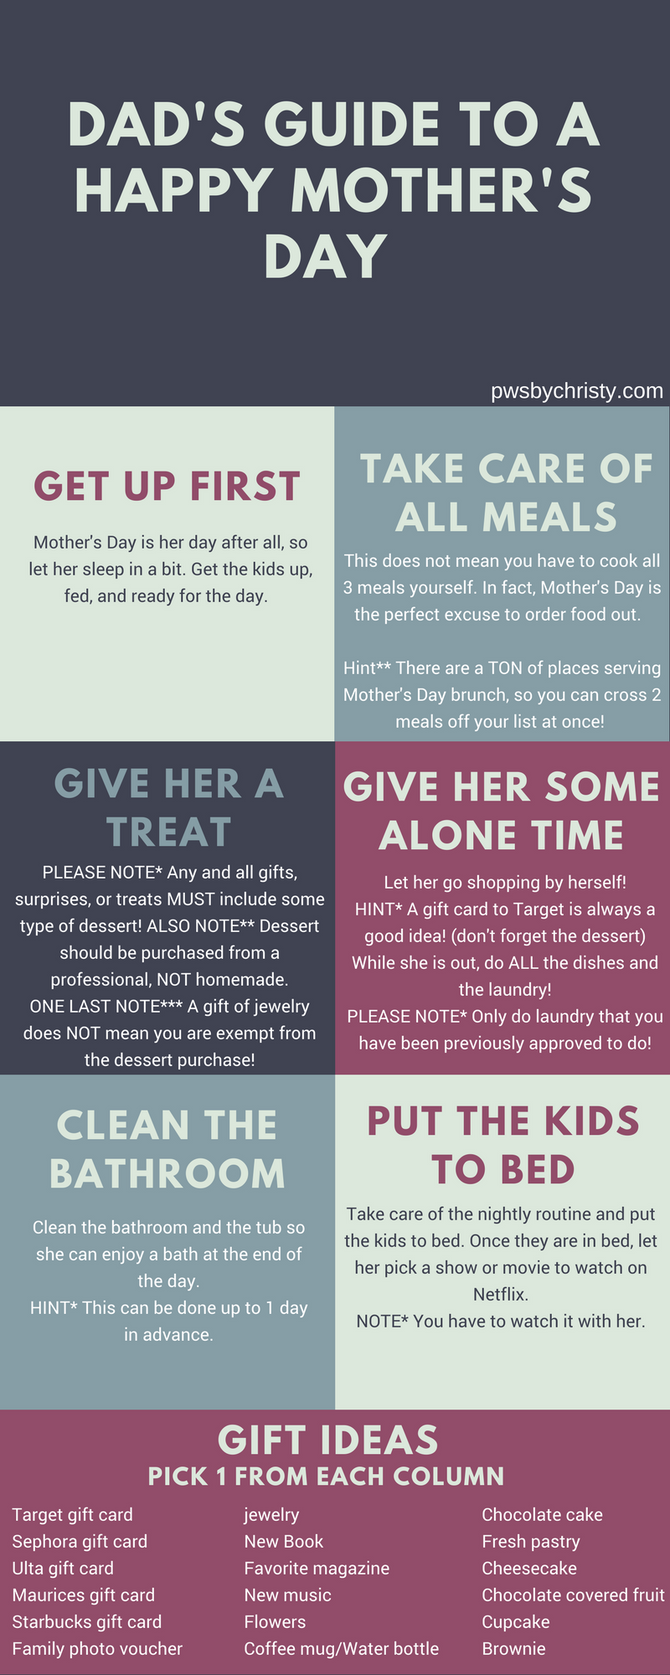 Dad's Guide to a Happy Mother's Day